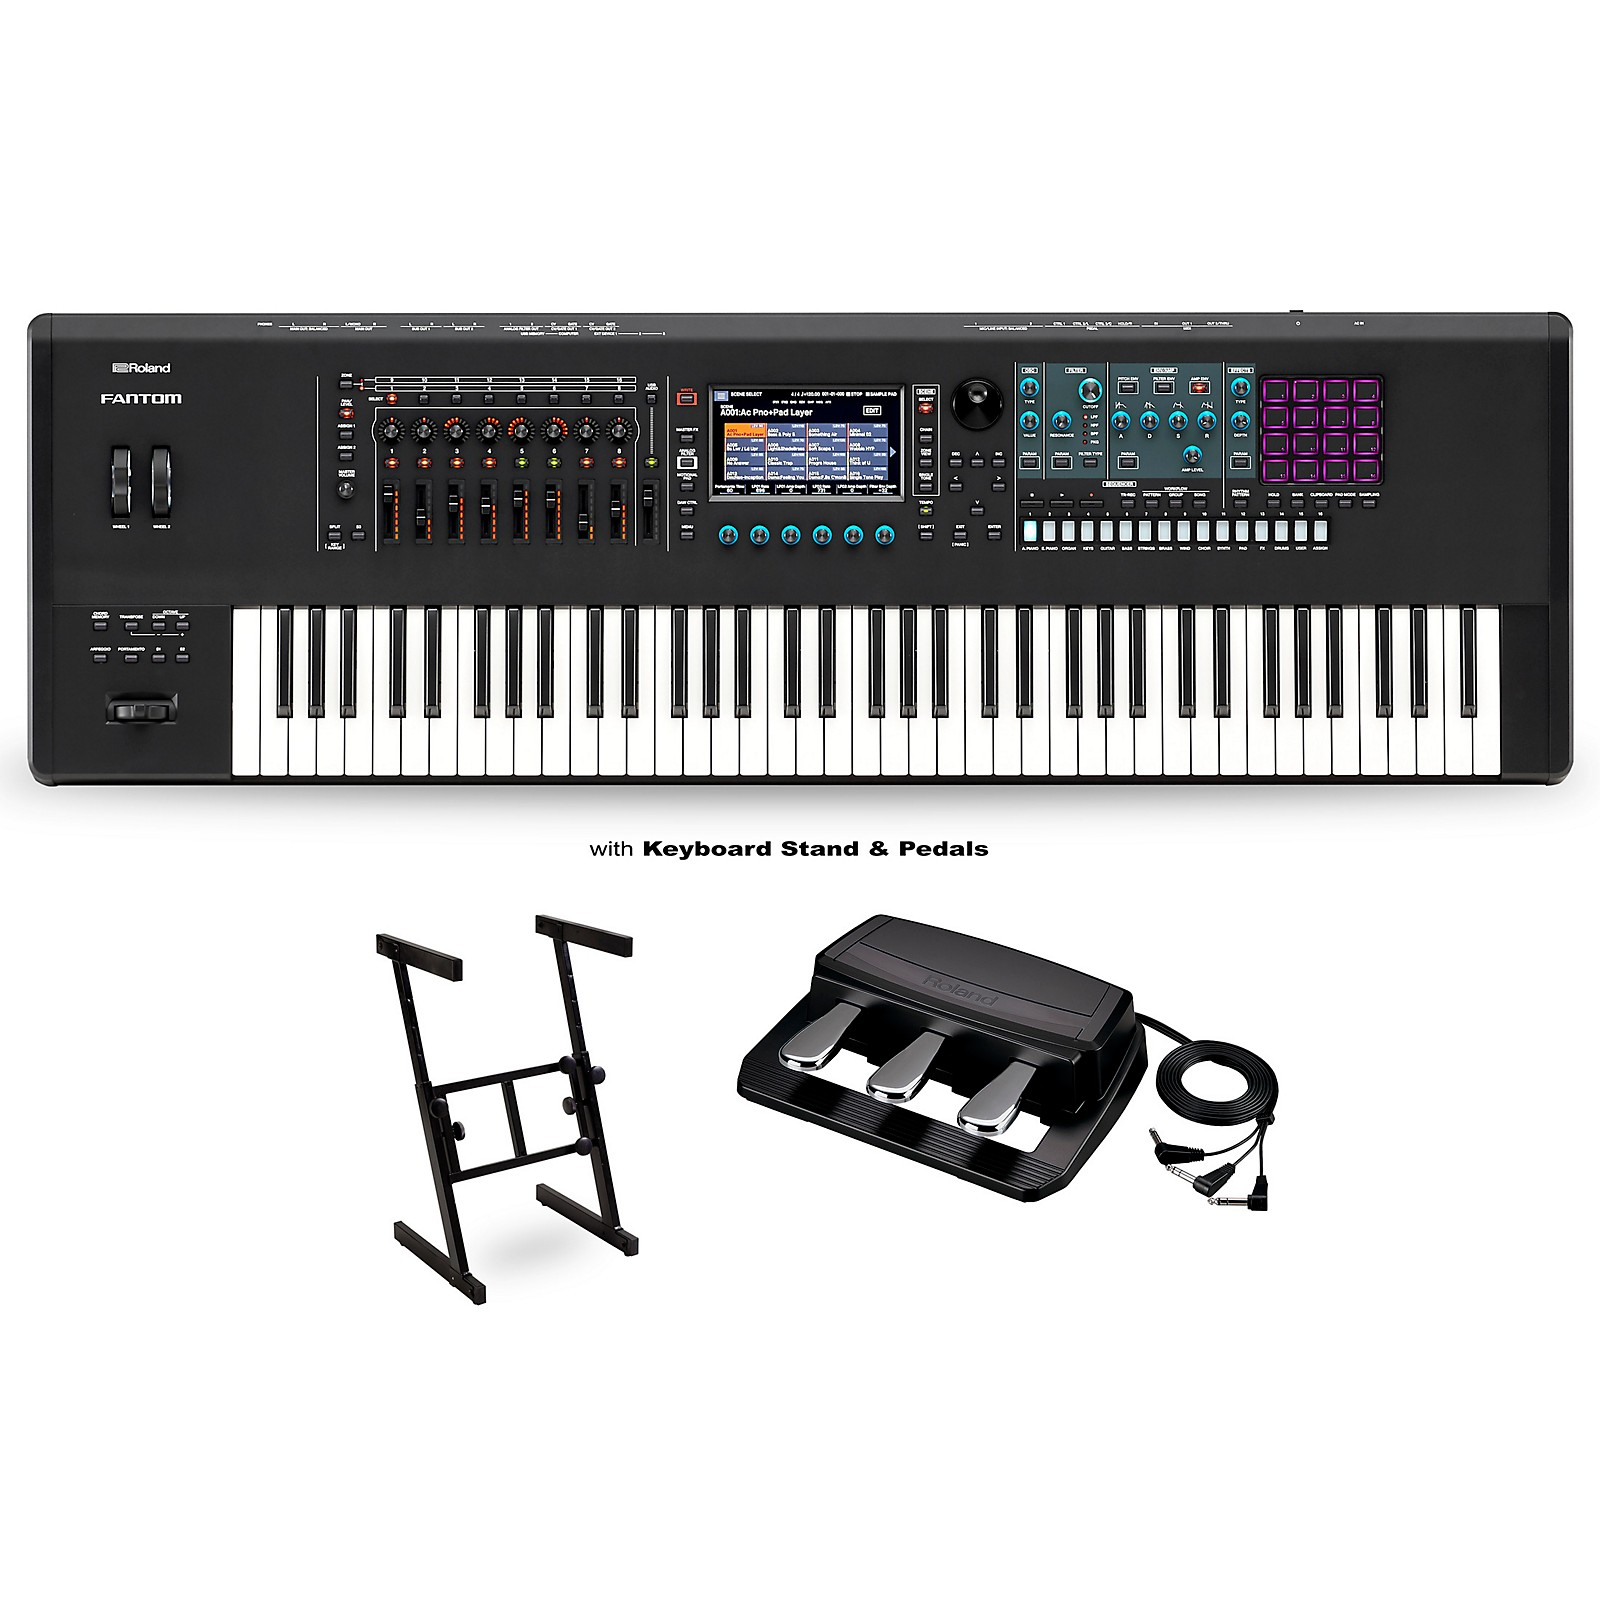 Roland FANTOM-7 Workstation with RPU-3 Pedal and Z Stand